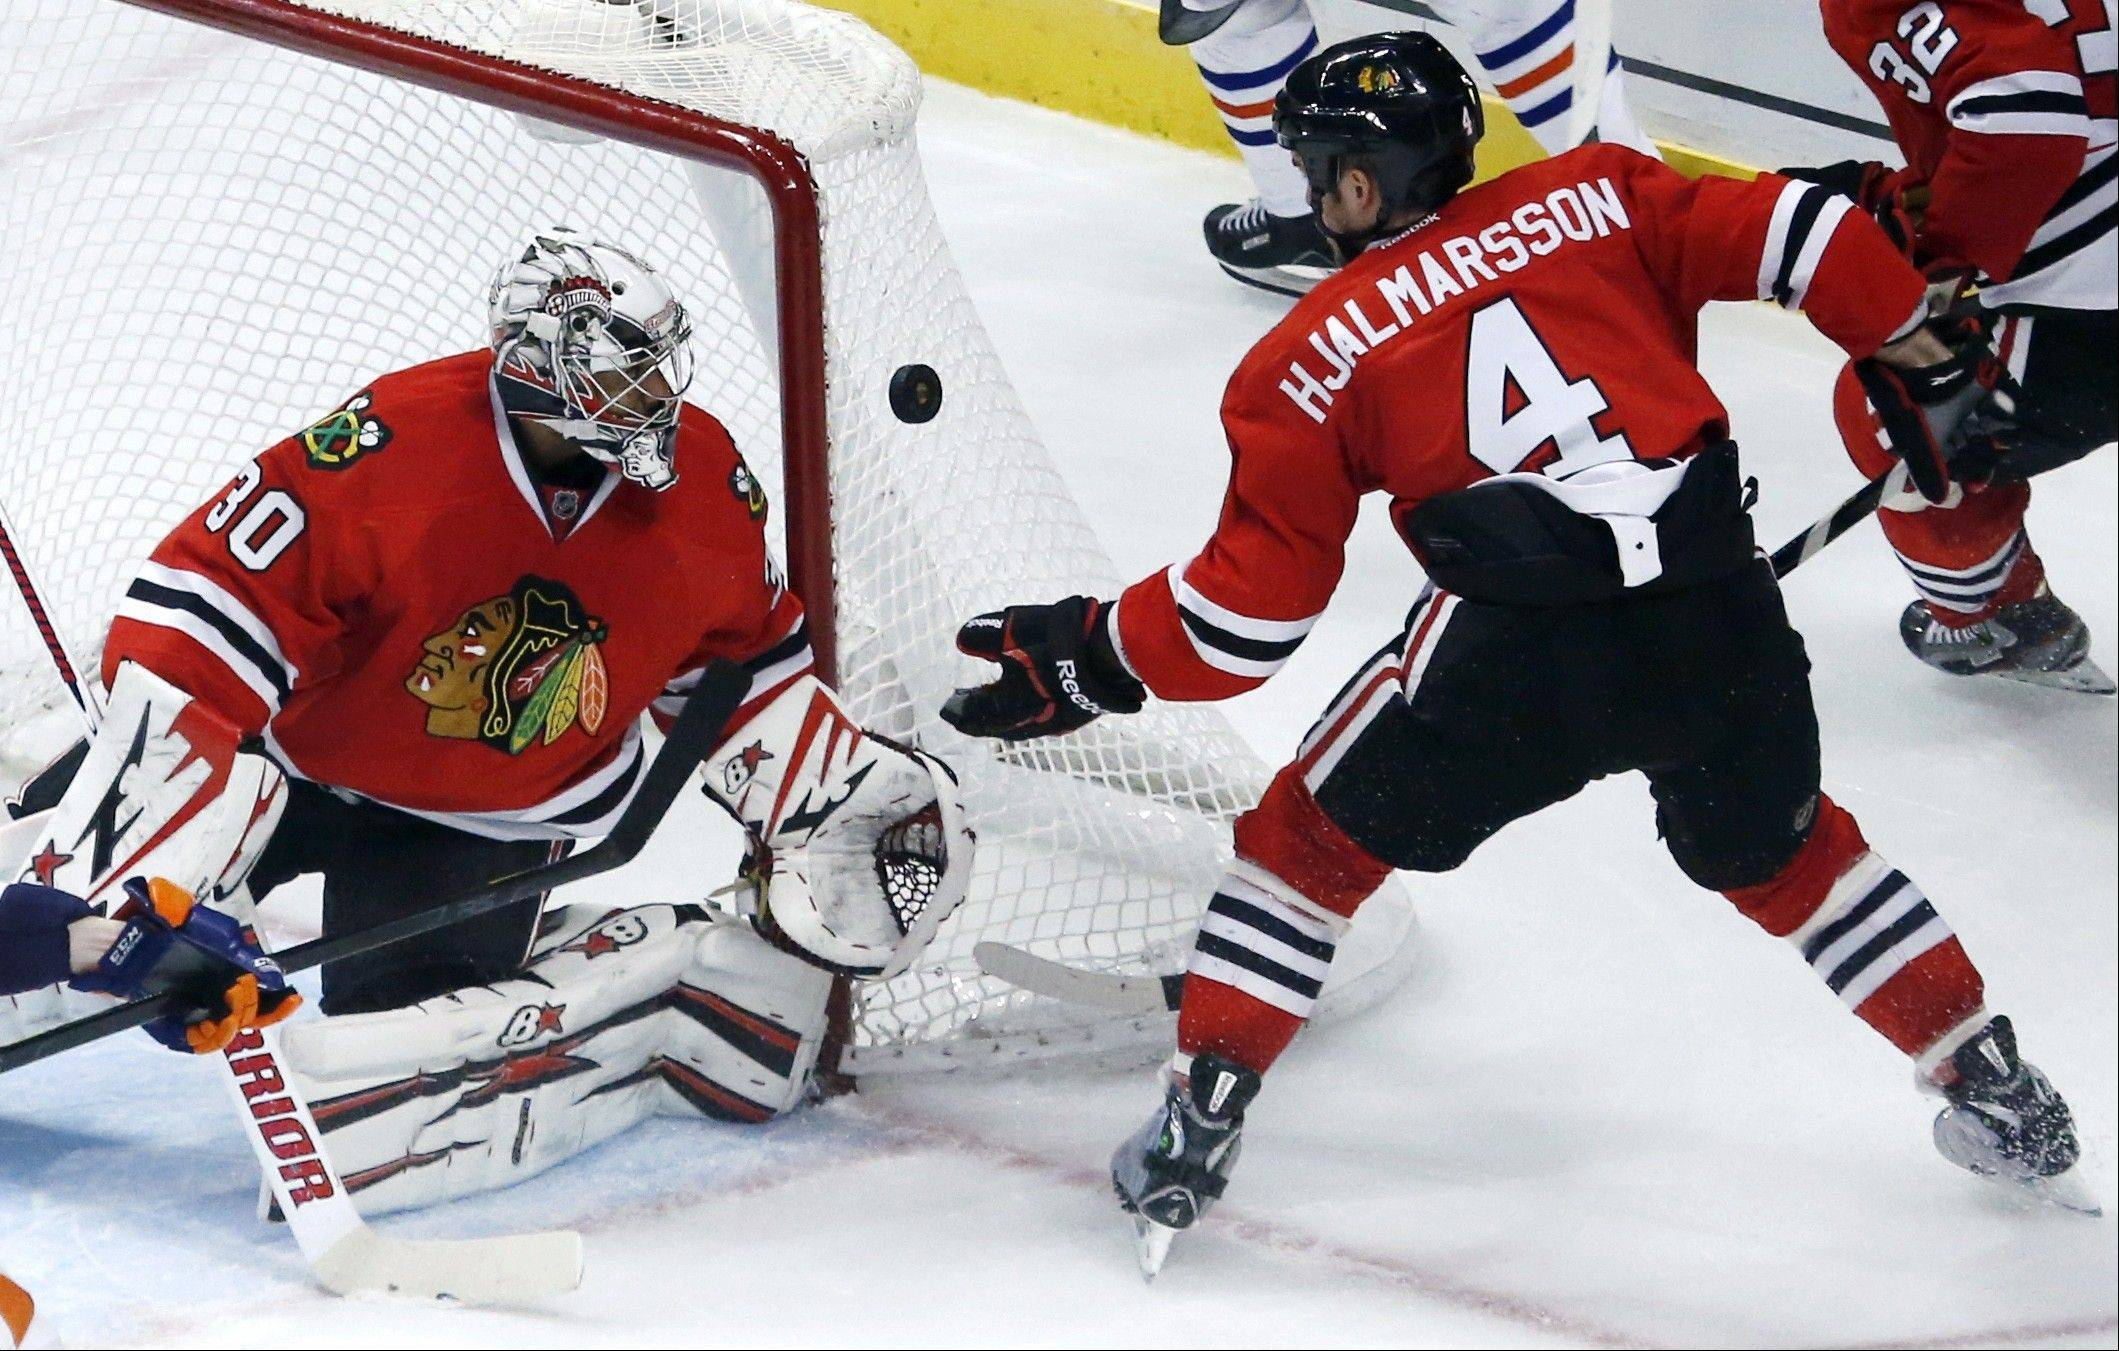 Chicago Blackhawks defenseman Niklas Hjalmarsson clears the puck after goalie Ray Emery made a save during the third period.